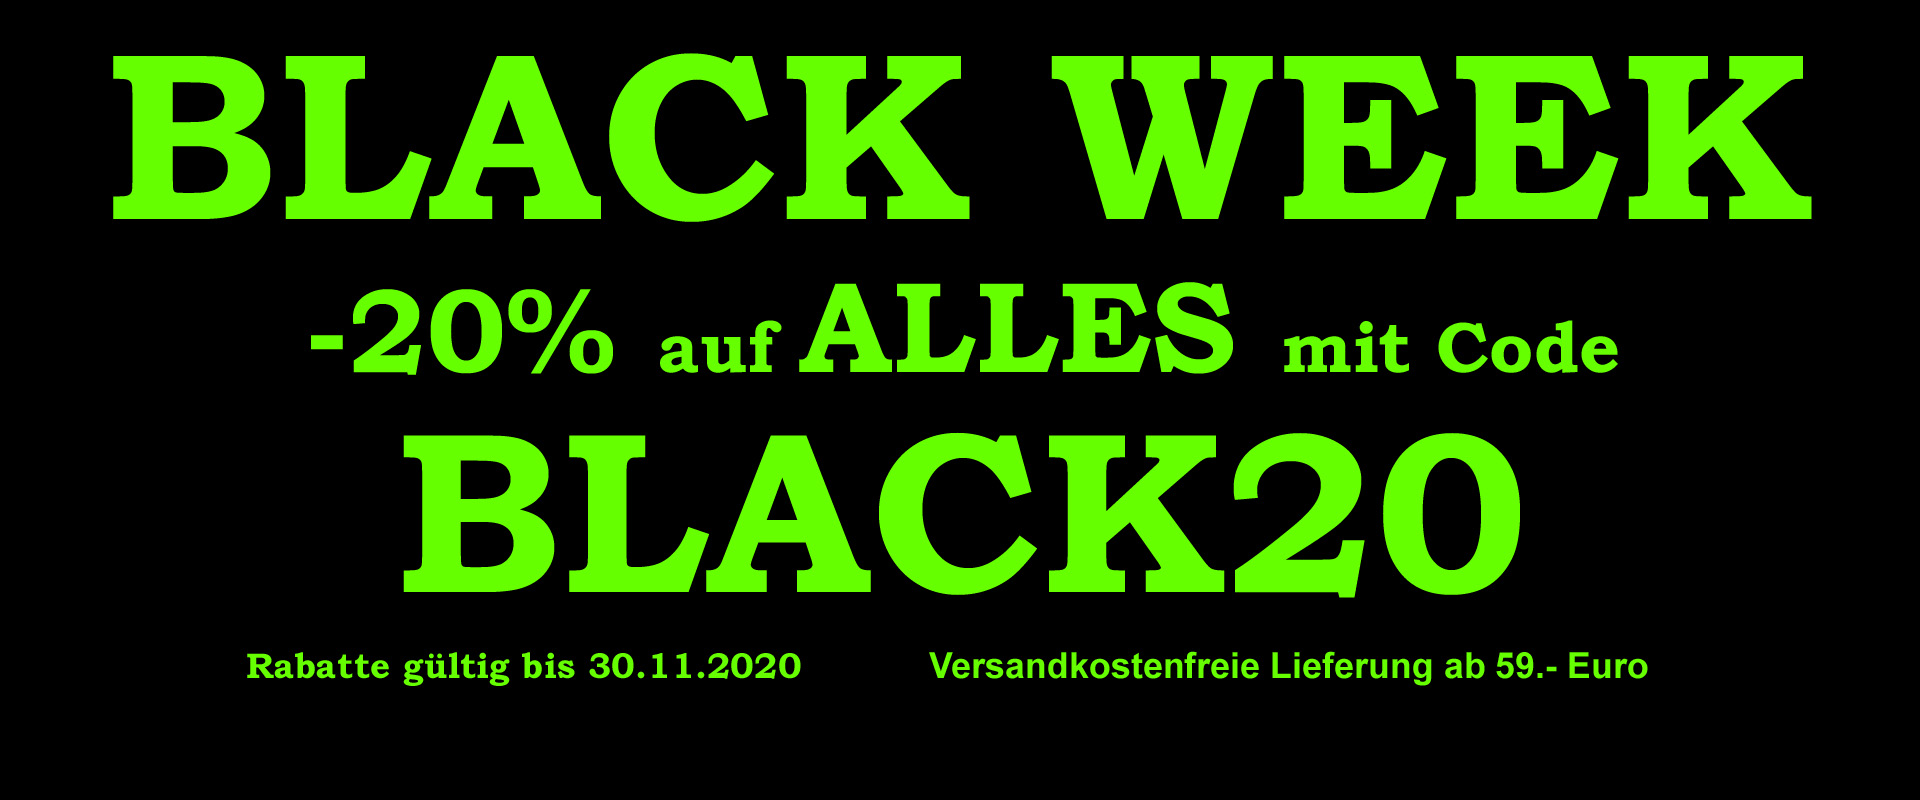 BLACK WEEK  -20% auf ALLES